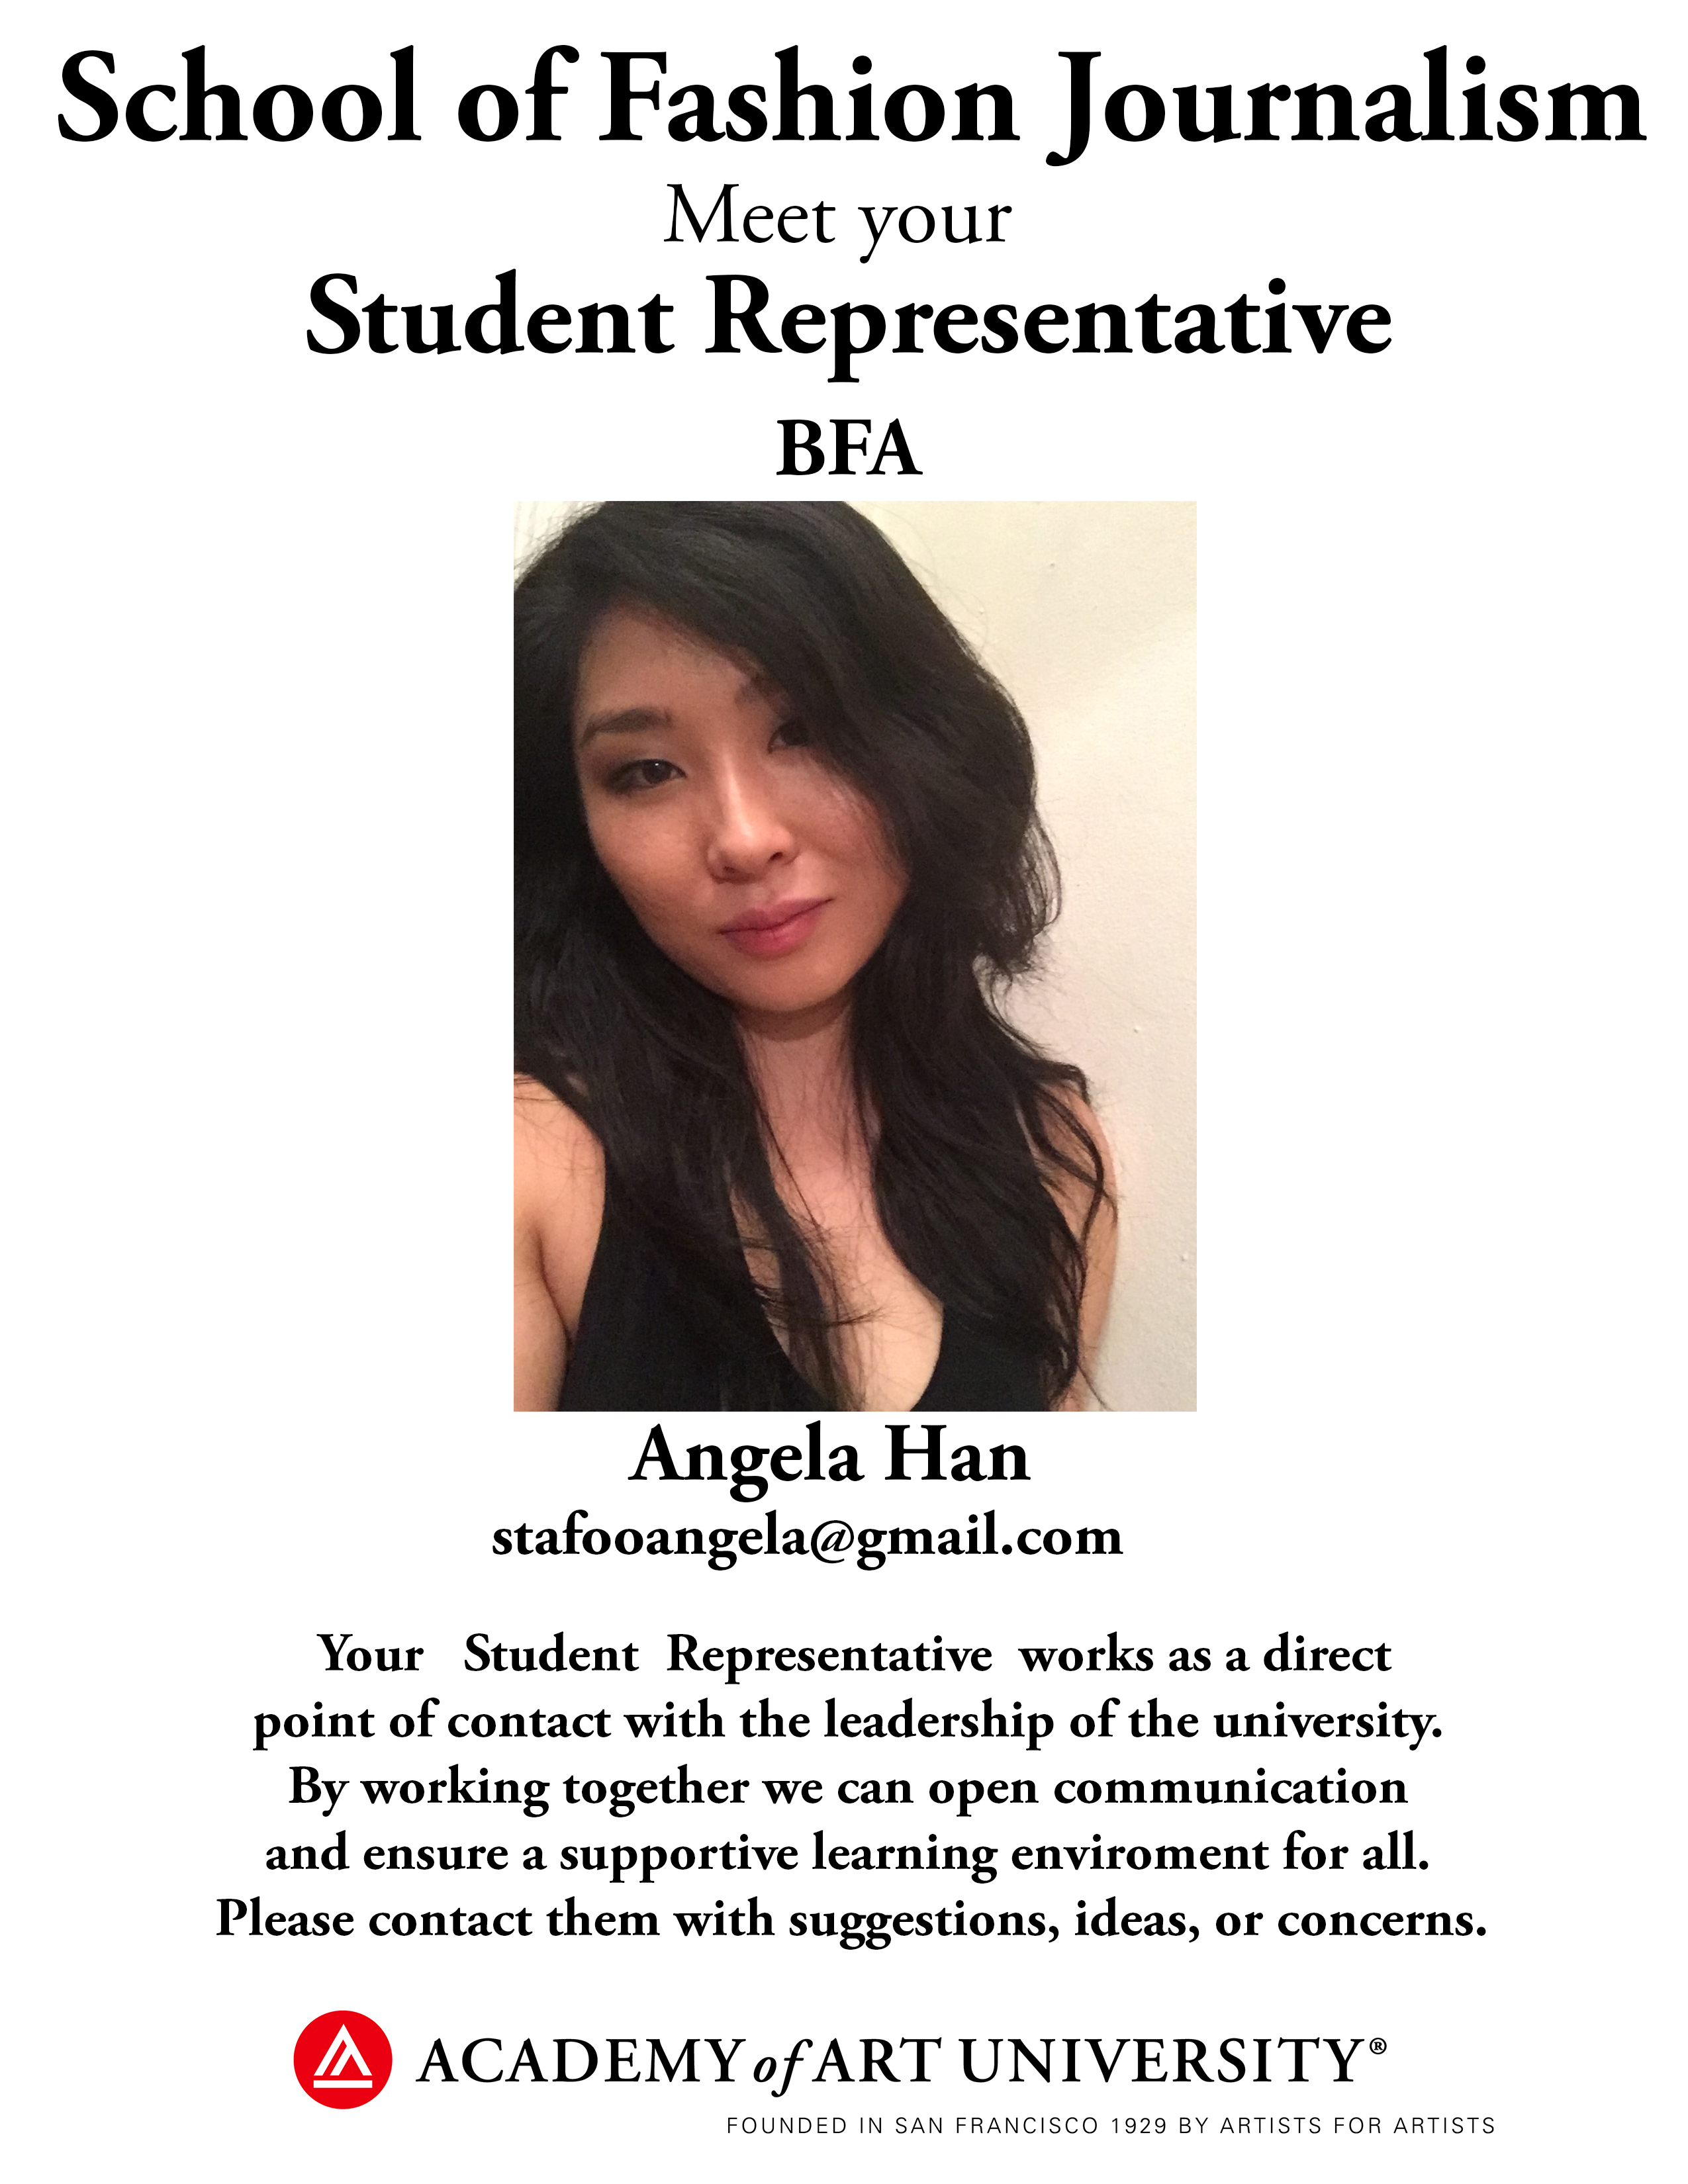 BA Fashion Journalism student representative Angela Han/email: stafooangela@gmail.com